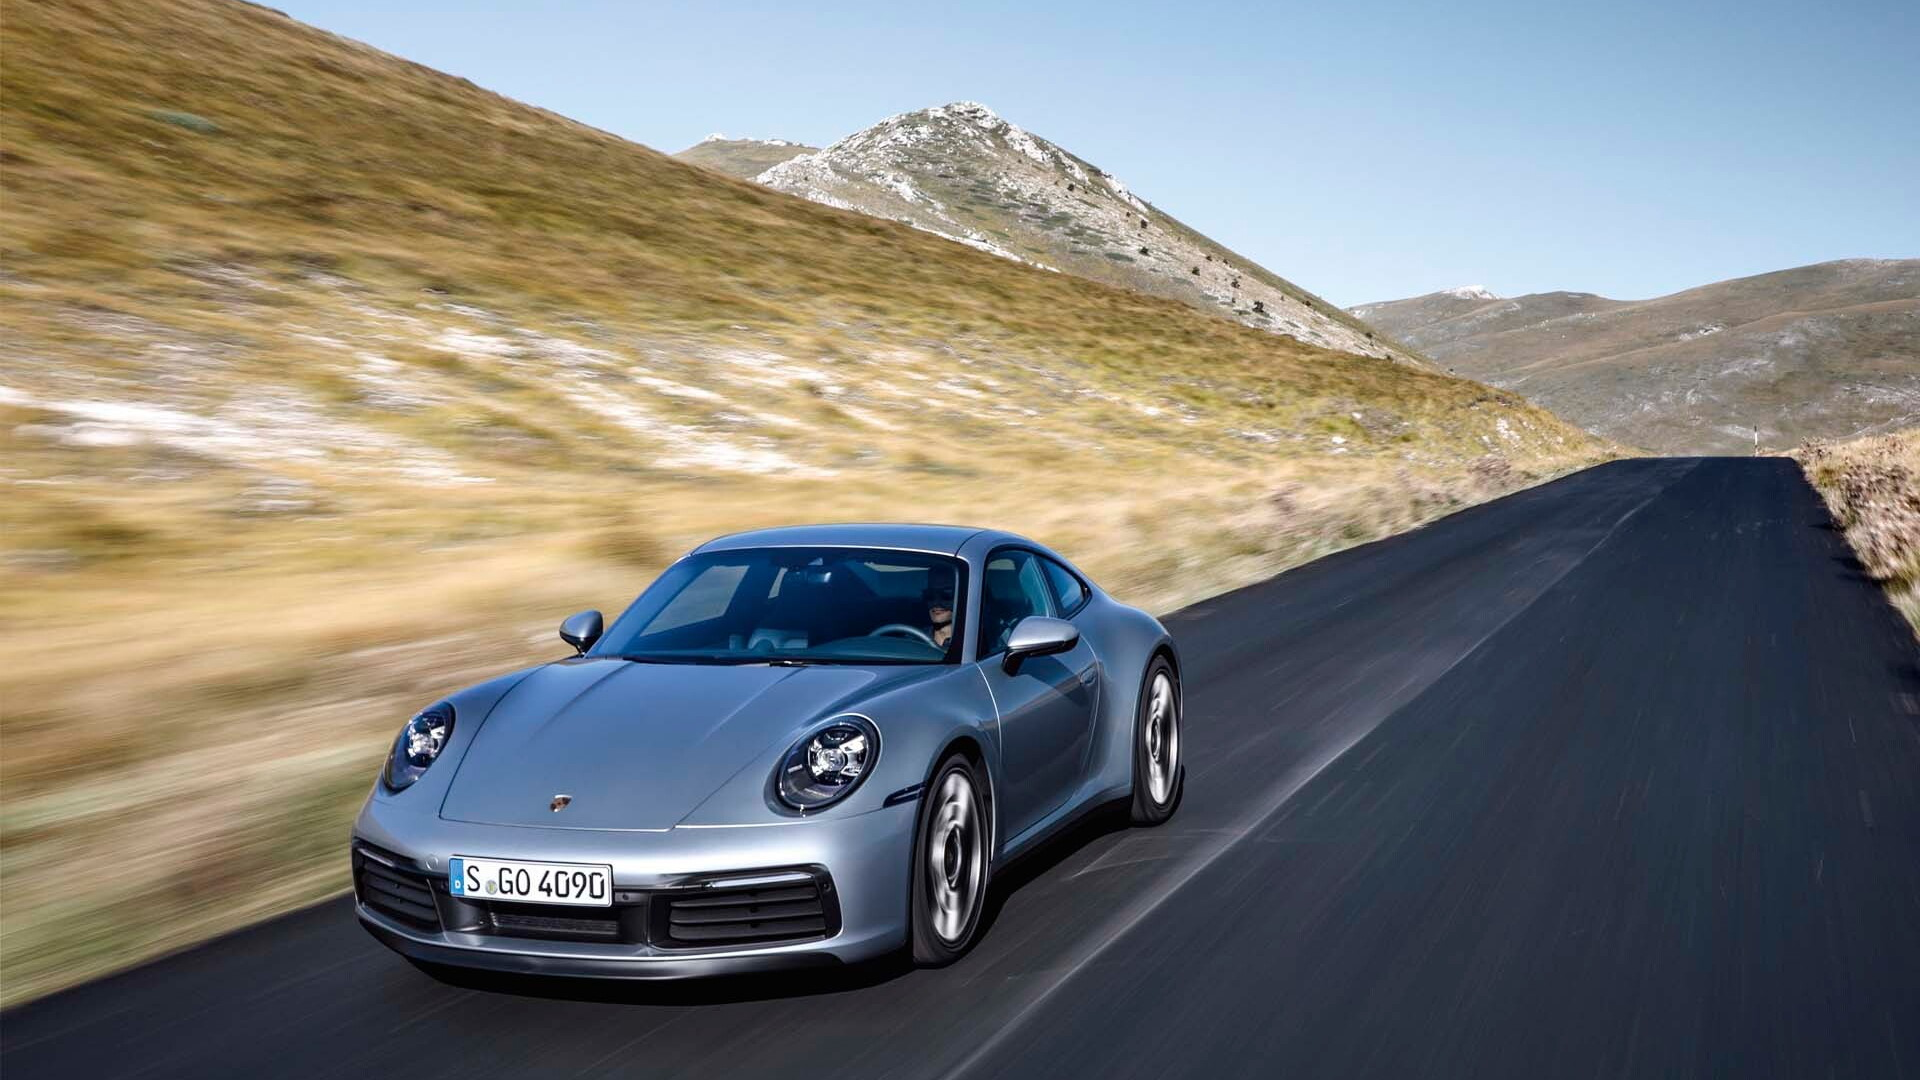 2020 Porsche 911 Carrera S Laps Ring In 7 25 Or 5 S Faster